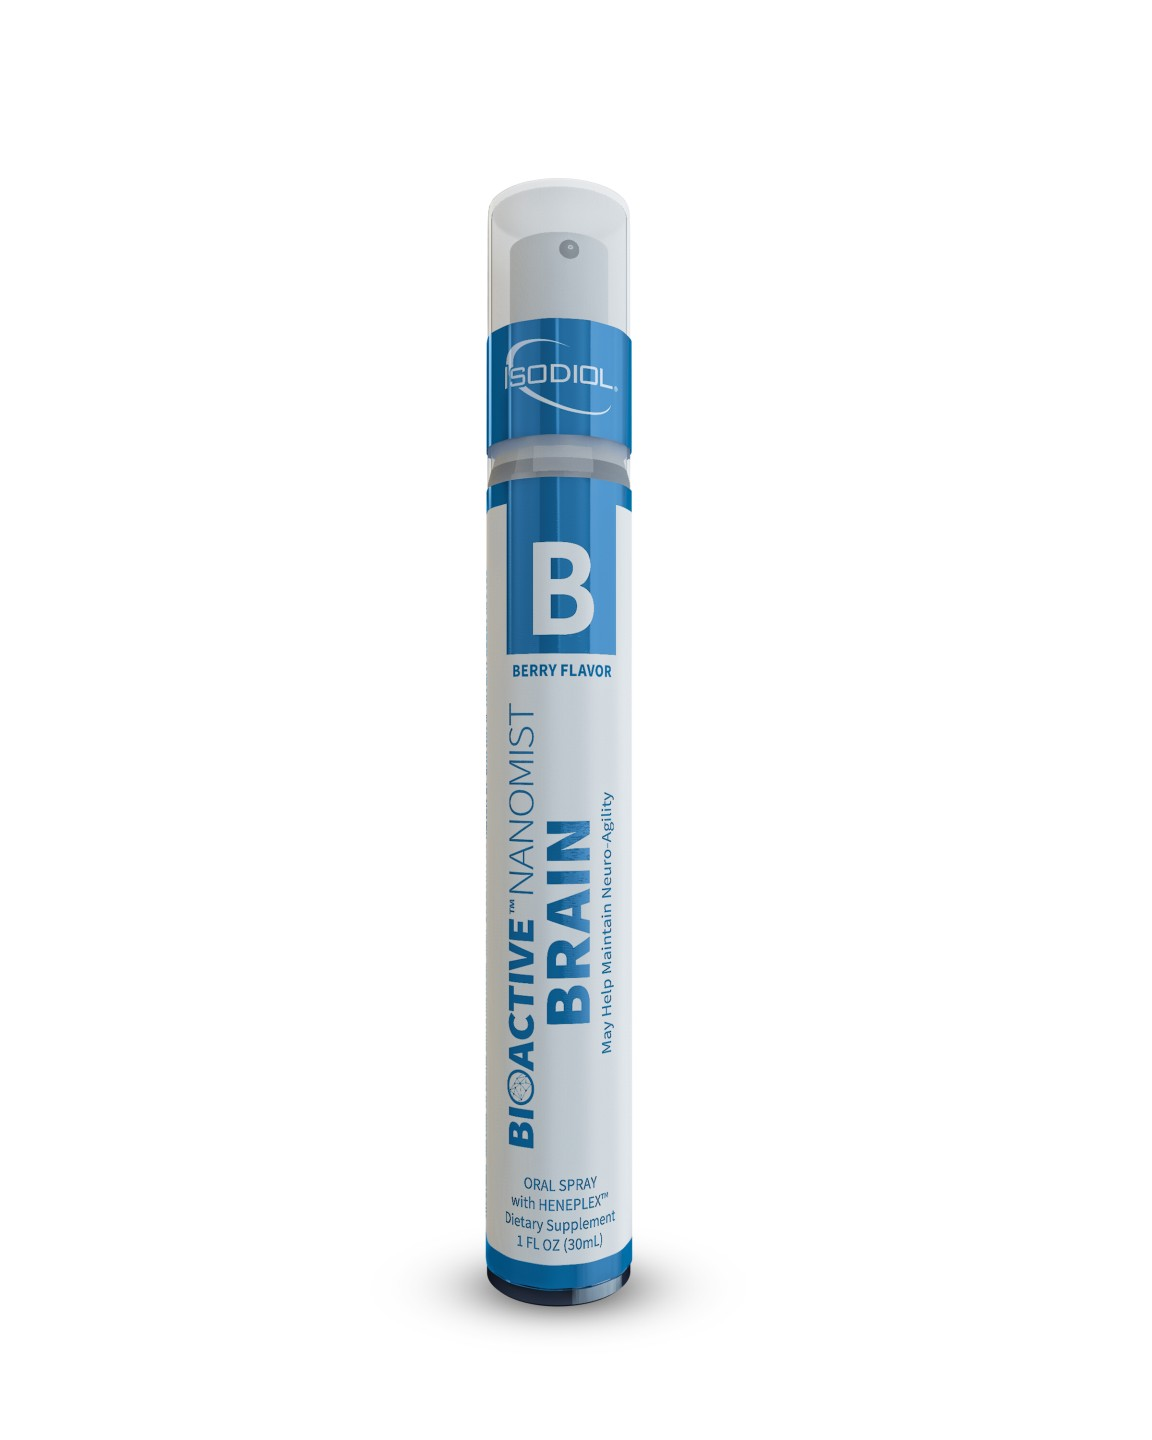 BioActive NanoMist Brain Oral Spray